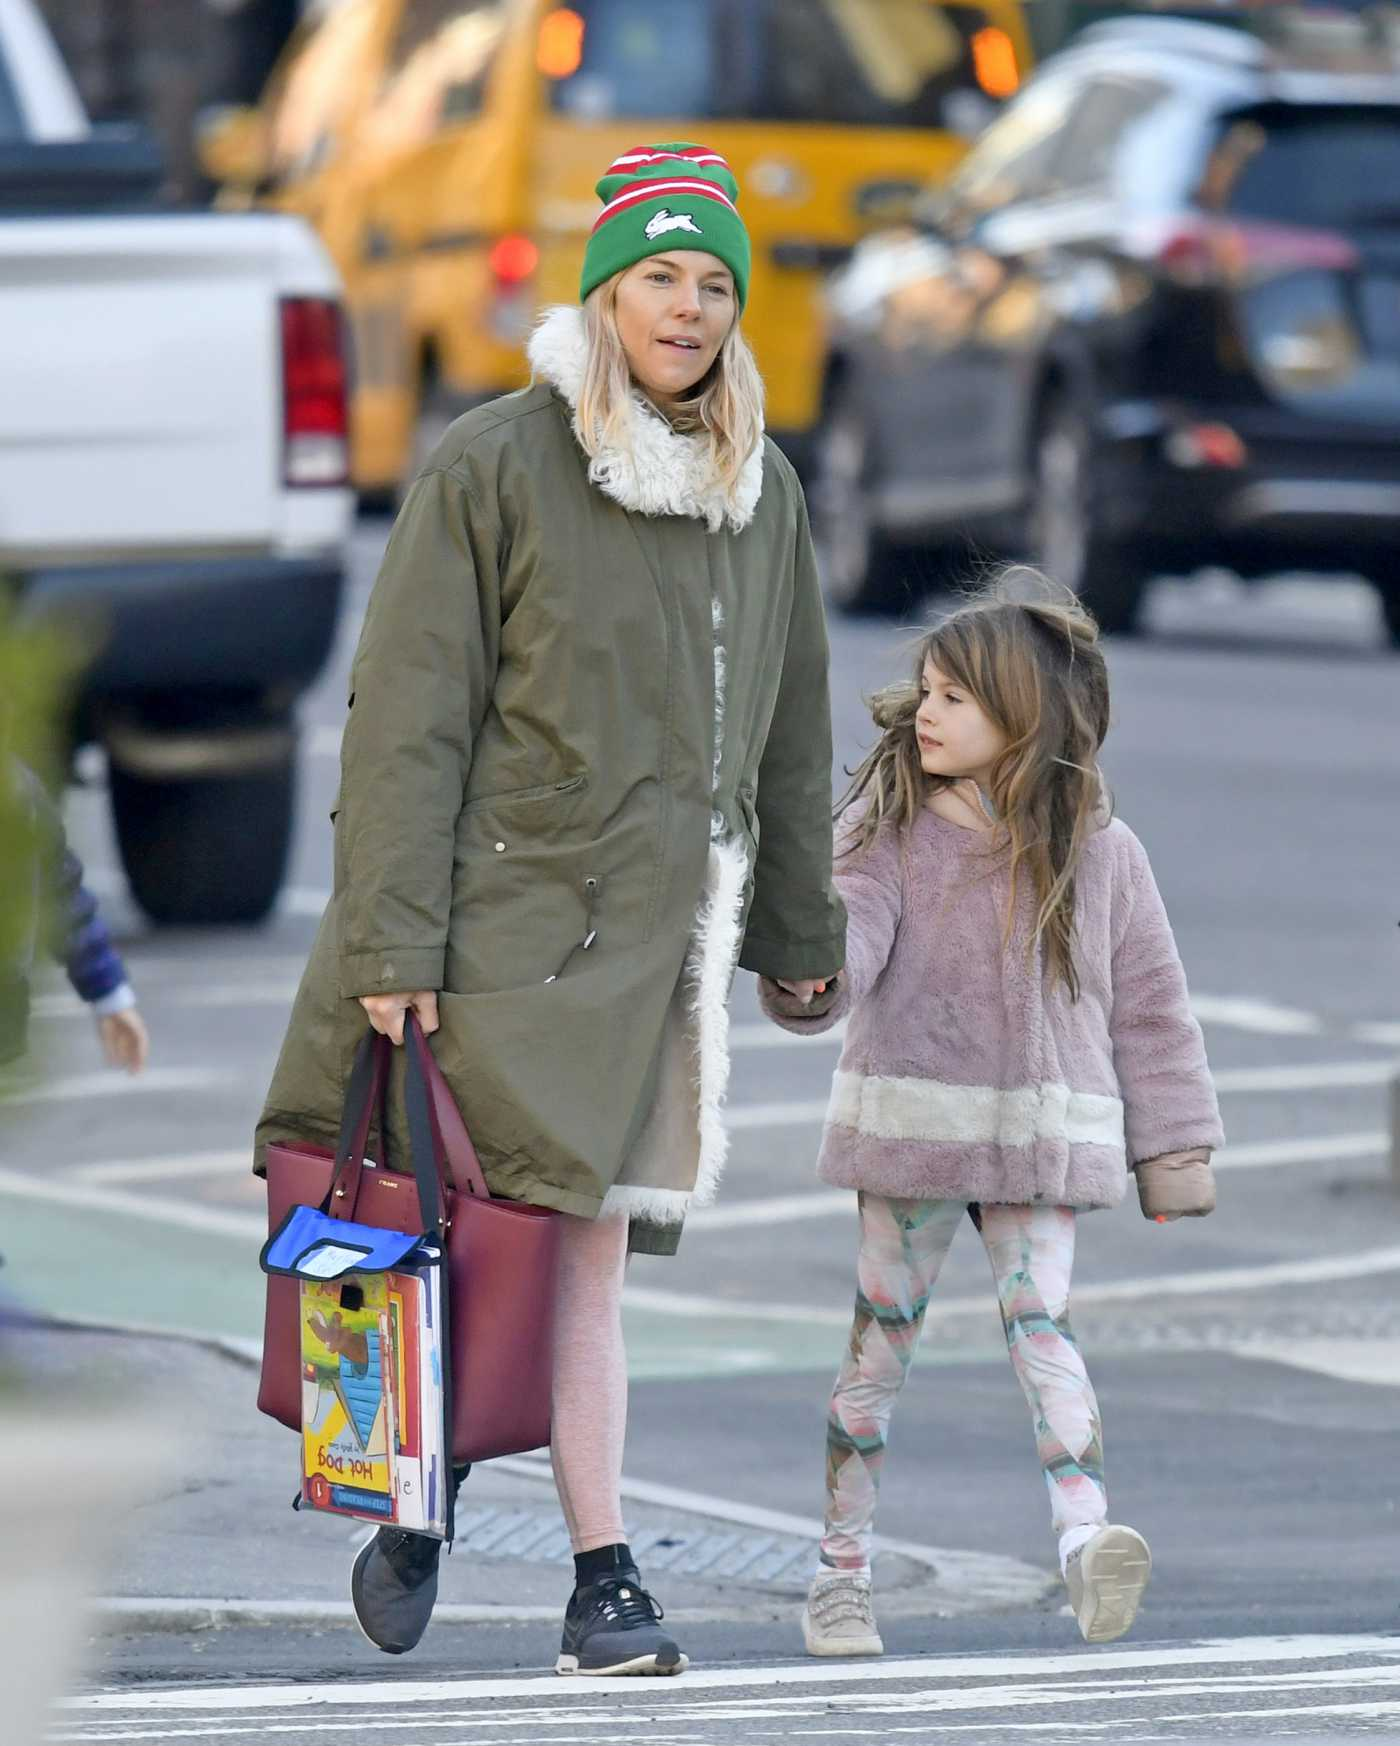 Sienna Miller in a Green Knit Hat Was Seen Out with Her Daughter in New York 04/01/2019